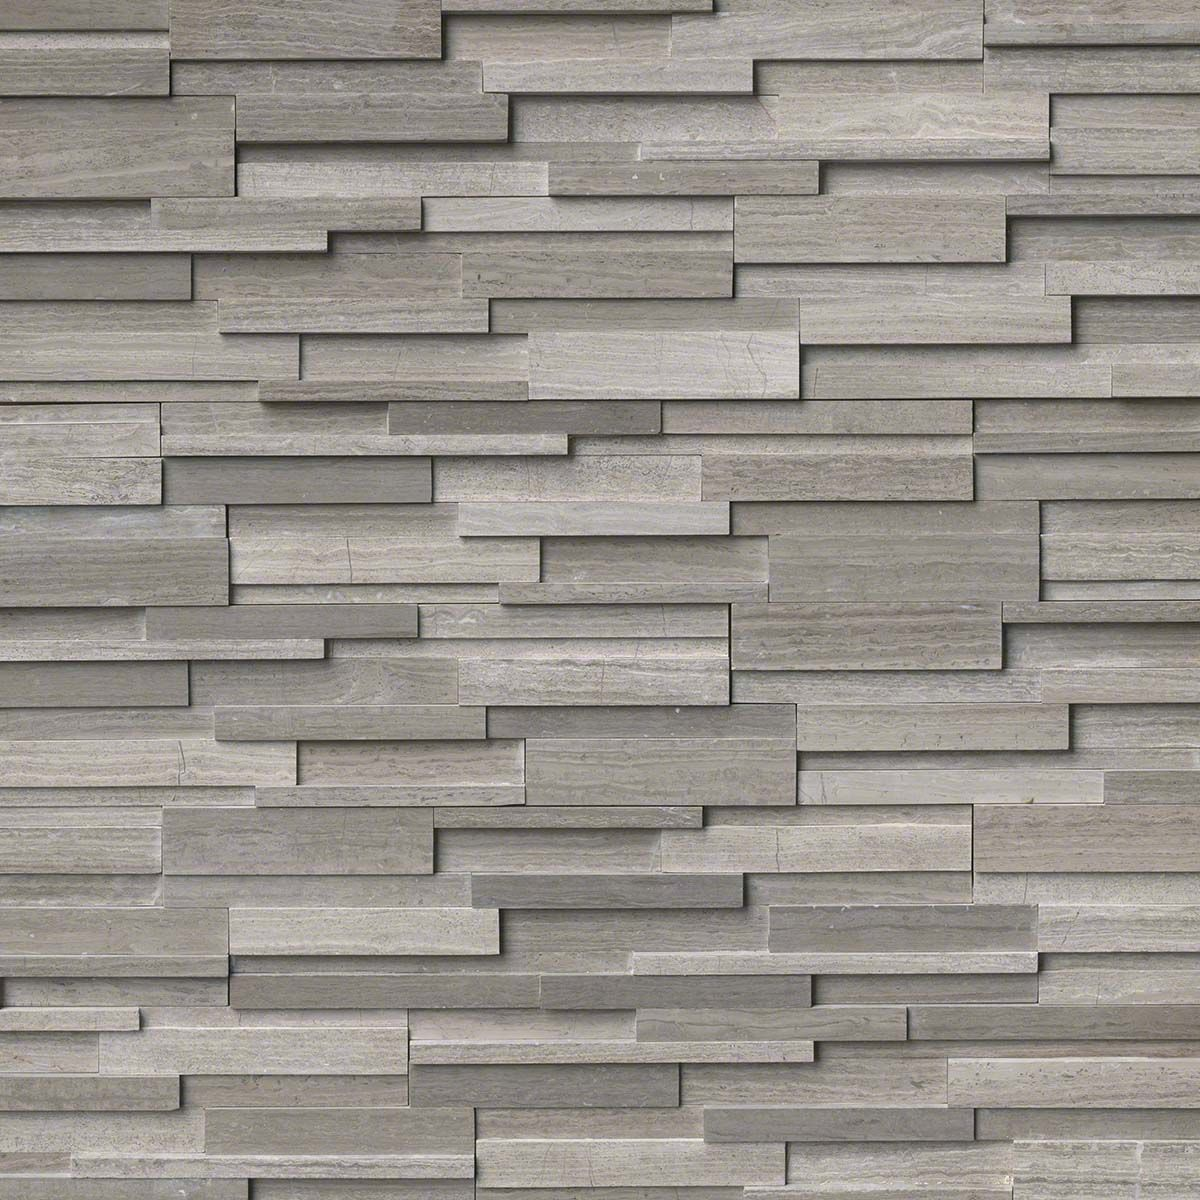 Add Modern Flair And Sophistication To Your Home By Choosing This Ms International Gray Oak Ledger Panel Honed Marble Wall Tile